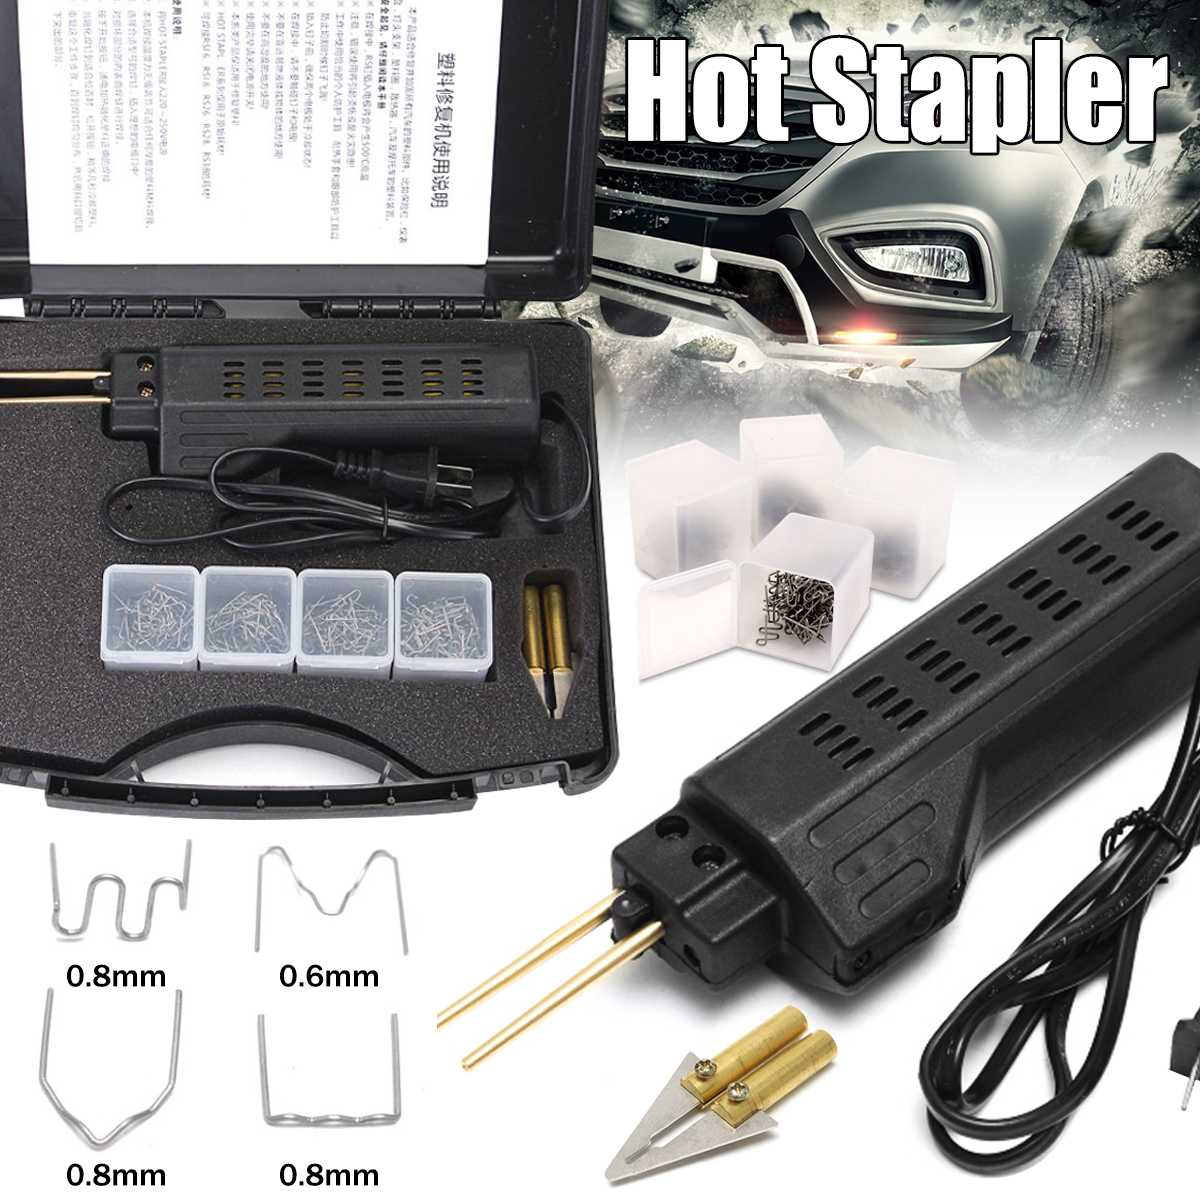 220-250V Plastic Bumper Repair Car Bumper Welding Torch Fairing Auto Body Tool Welding Machine 200 Plastic Stapler